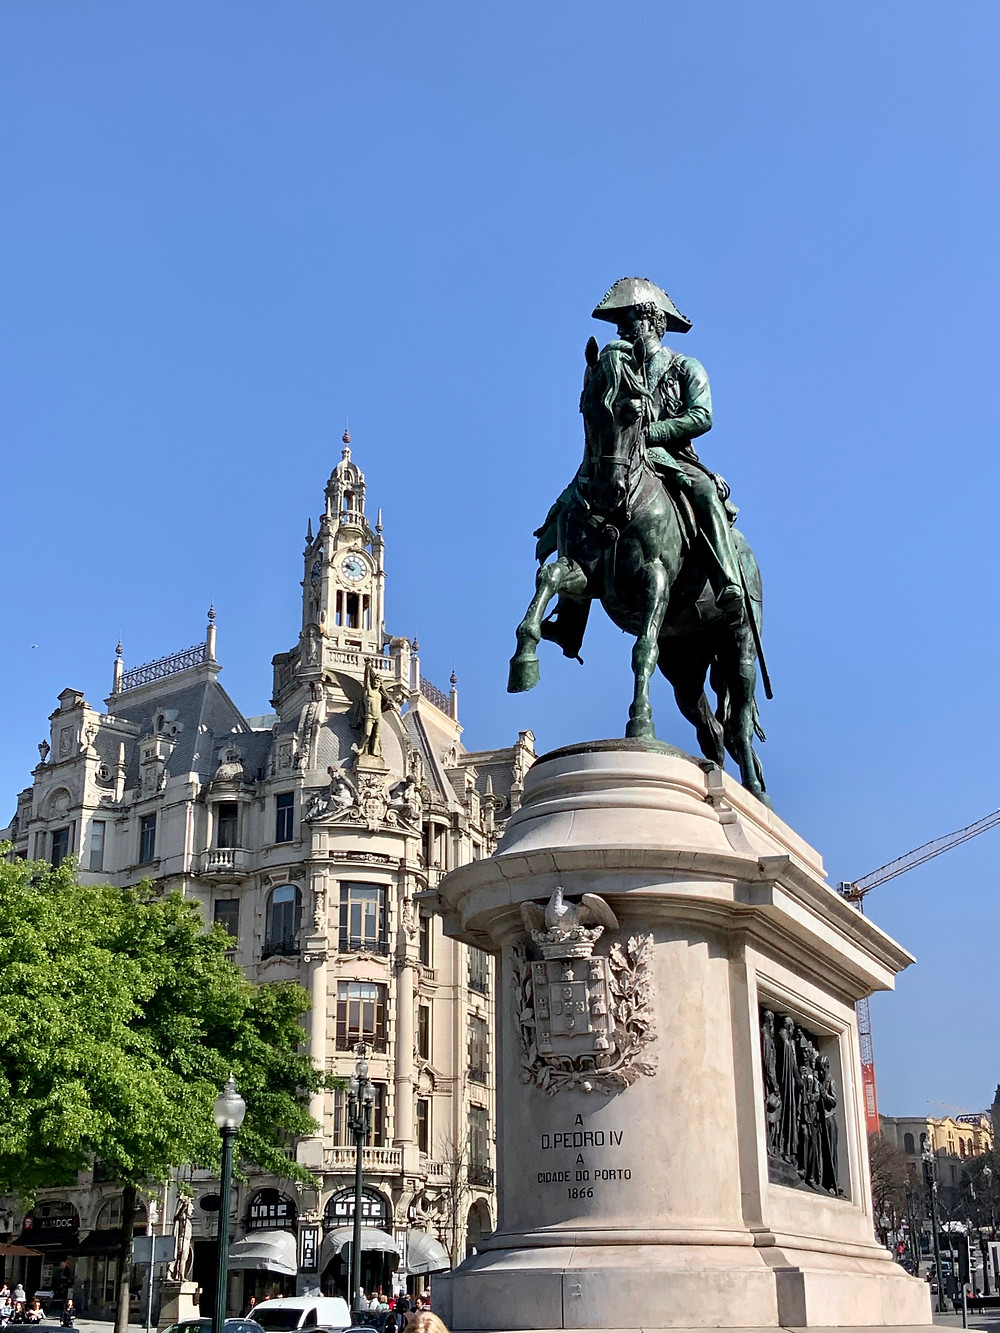 the fancy McDonalds is right across from Porto's Pedro statue